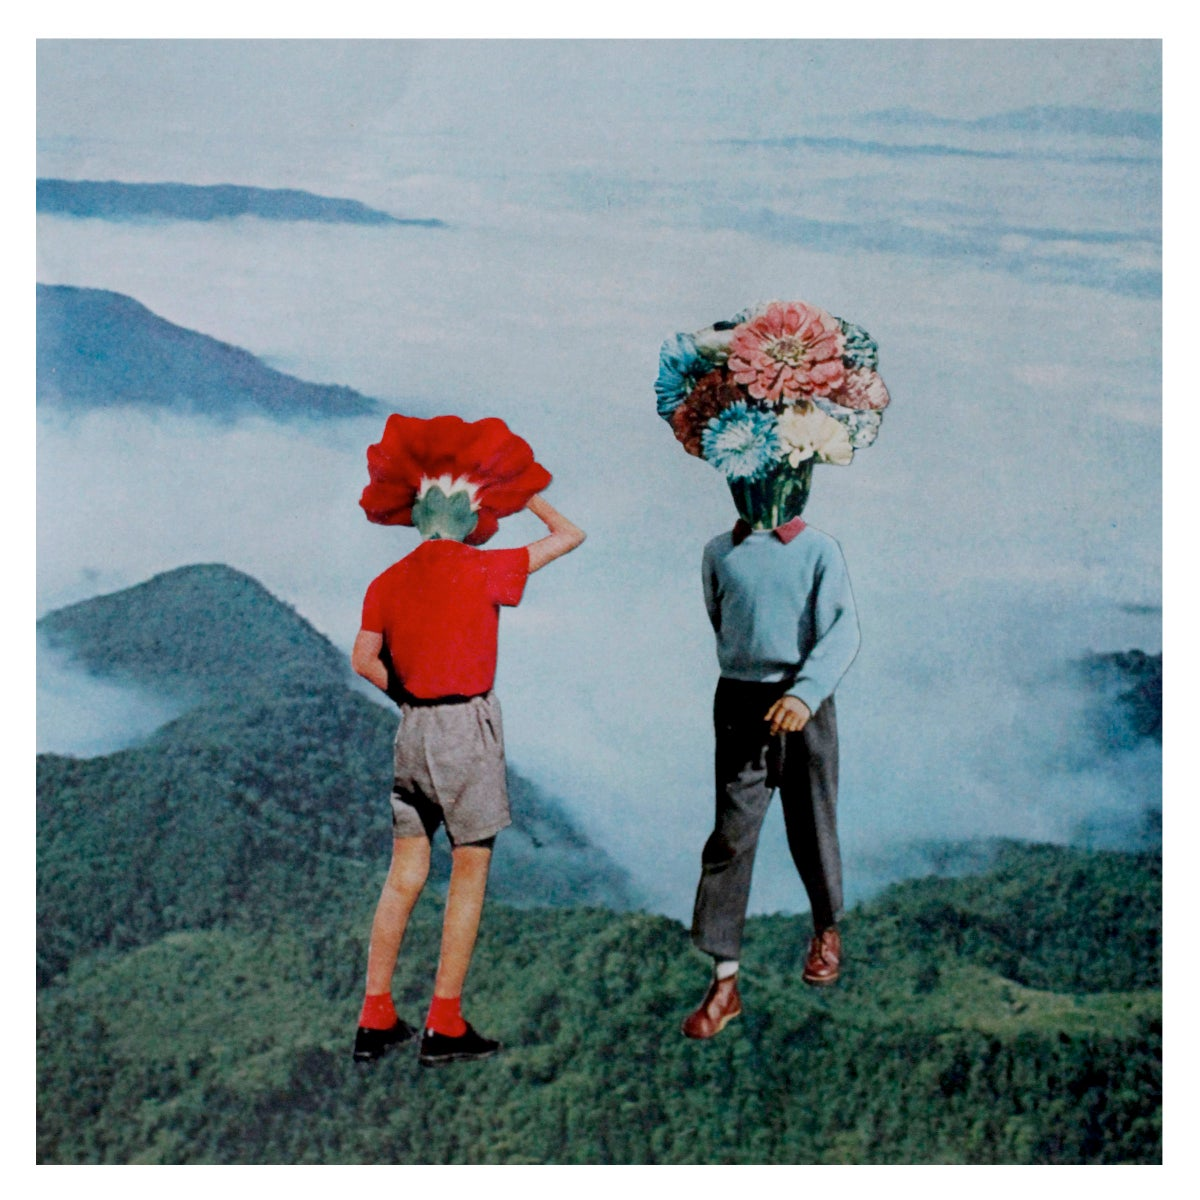 Image of Flower Kids 8x8 Limited Edition Print